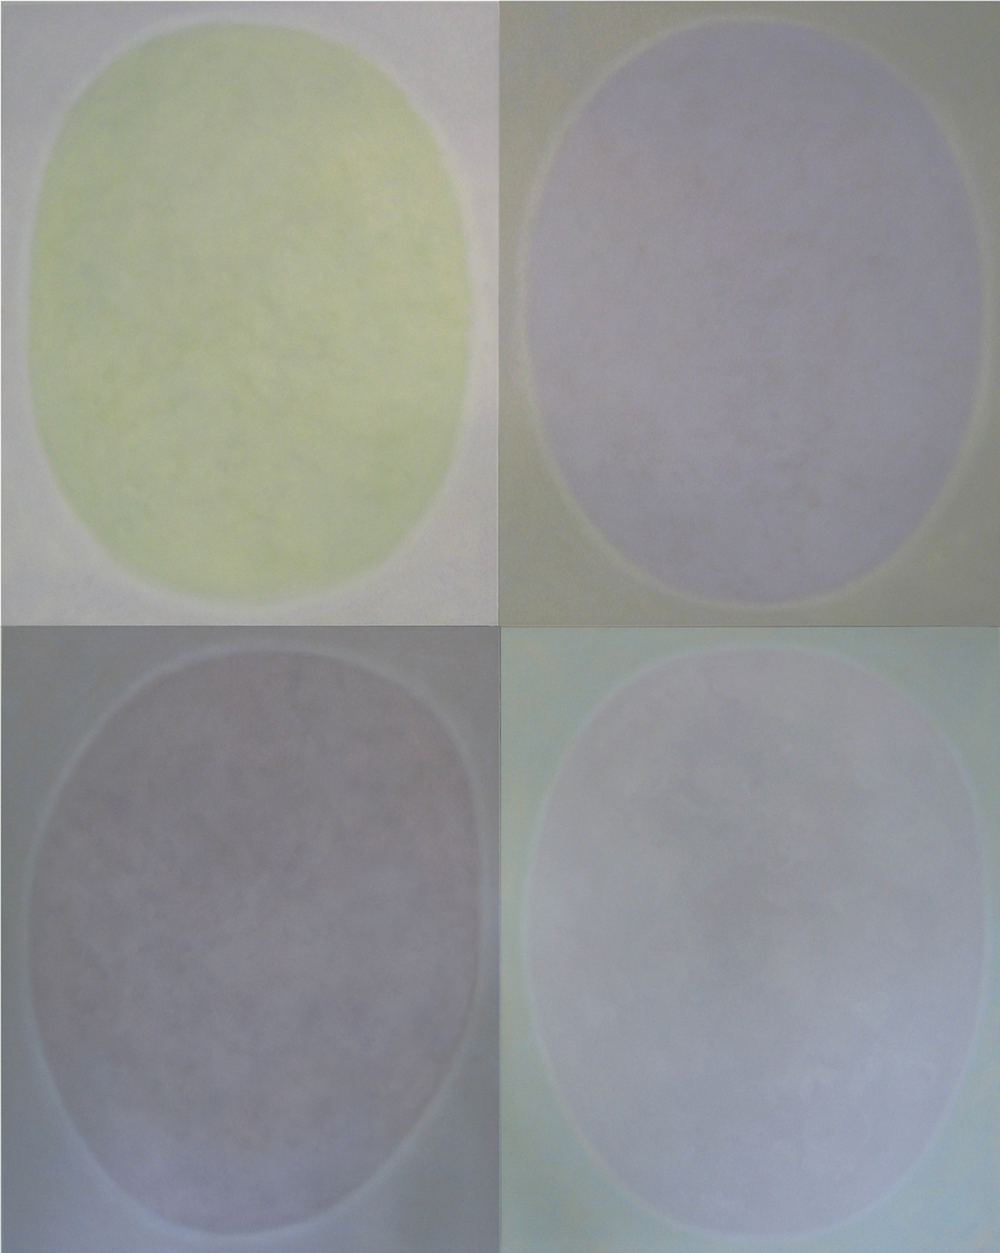 "Silent 17, oil on canvas, 2008, series of 4 panels W24"" x H36"" each, total format W48"" x H72"". Private collection."